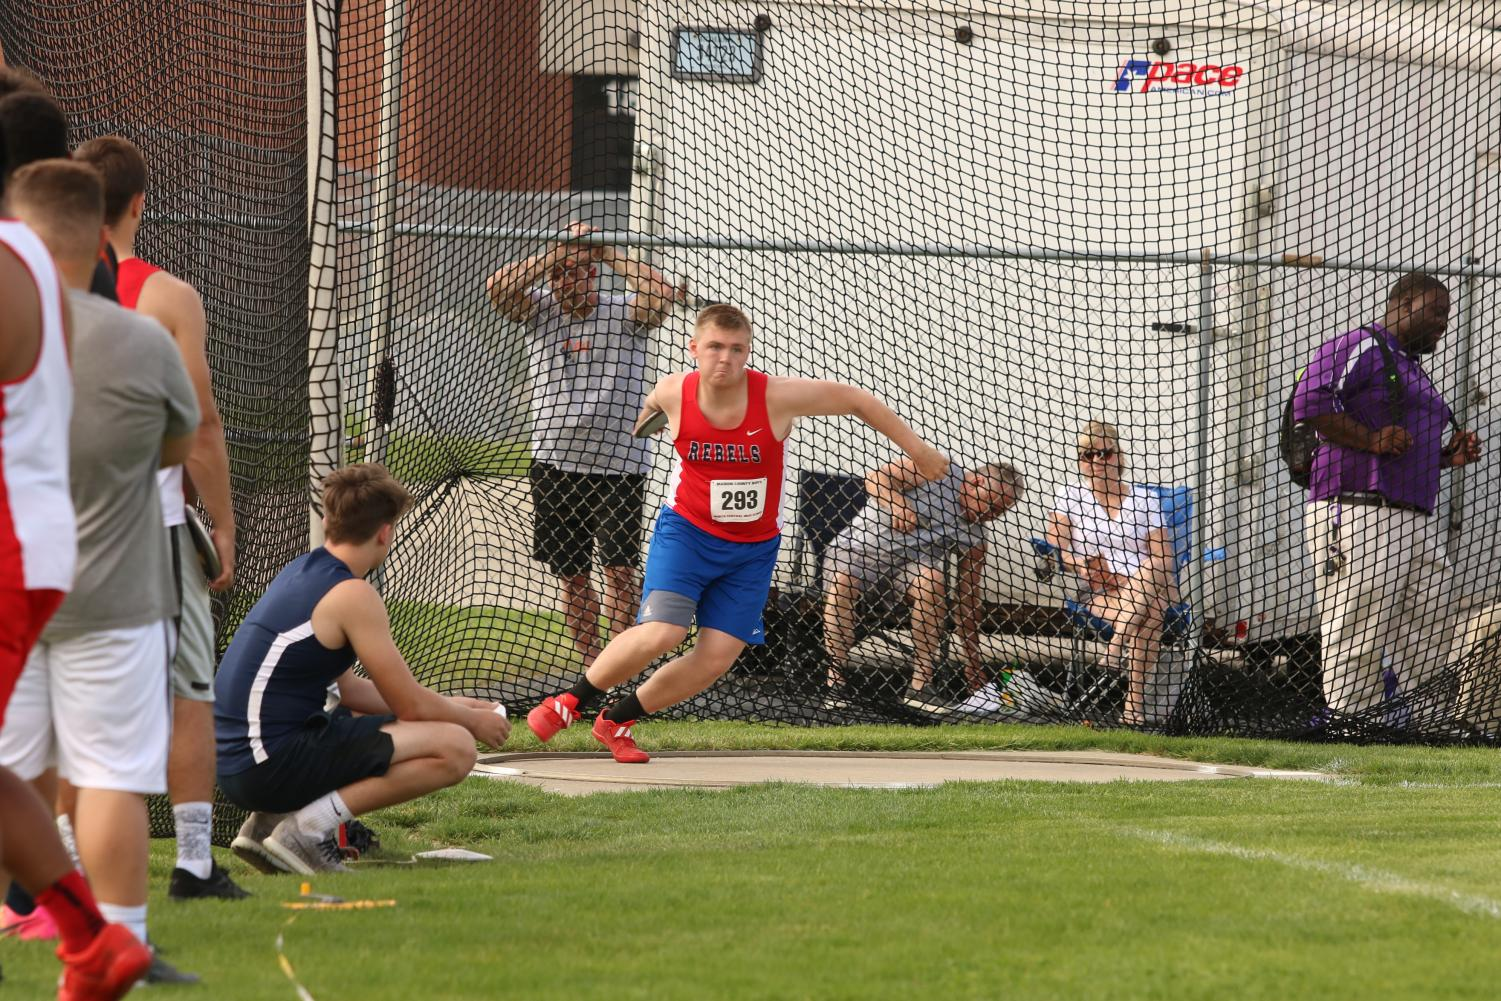 SPIN TO WIN: Holok throws discus at the Marion County meet. The entire team placed 8th overall at the meet.